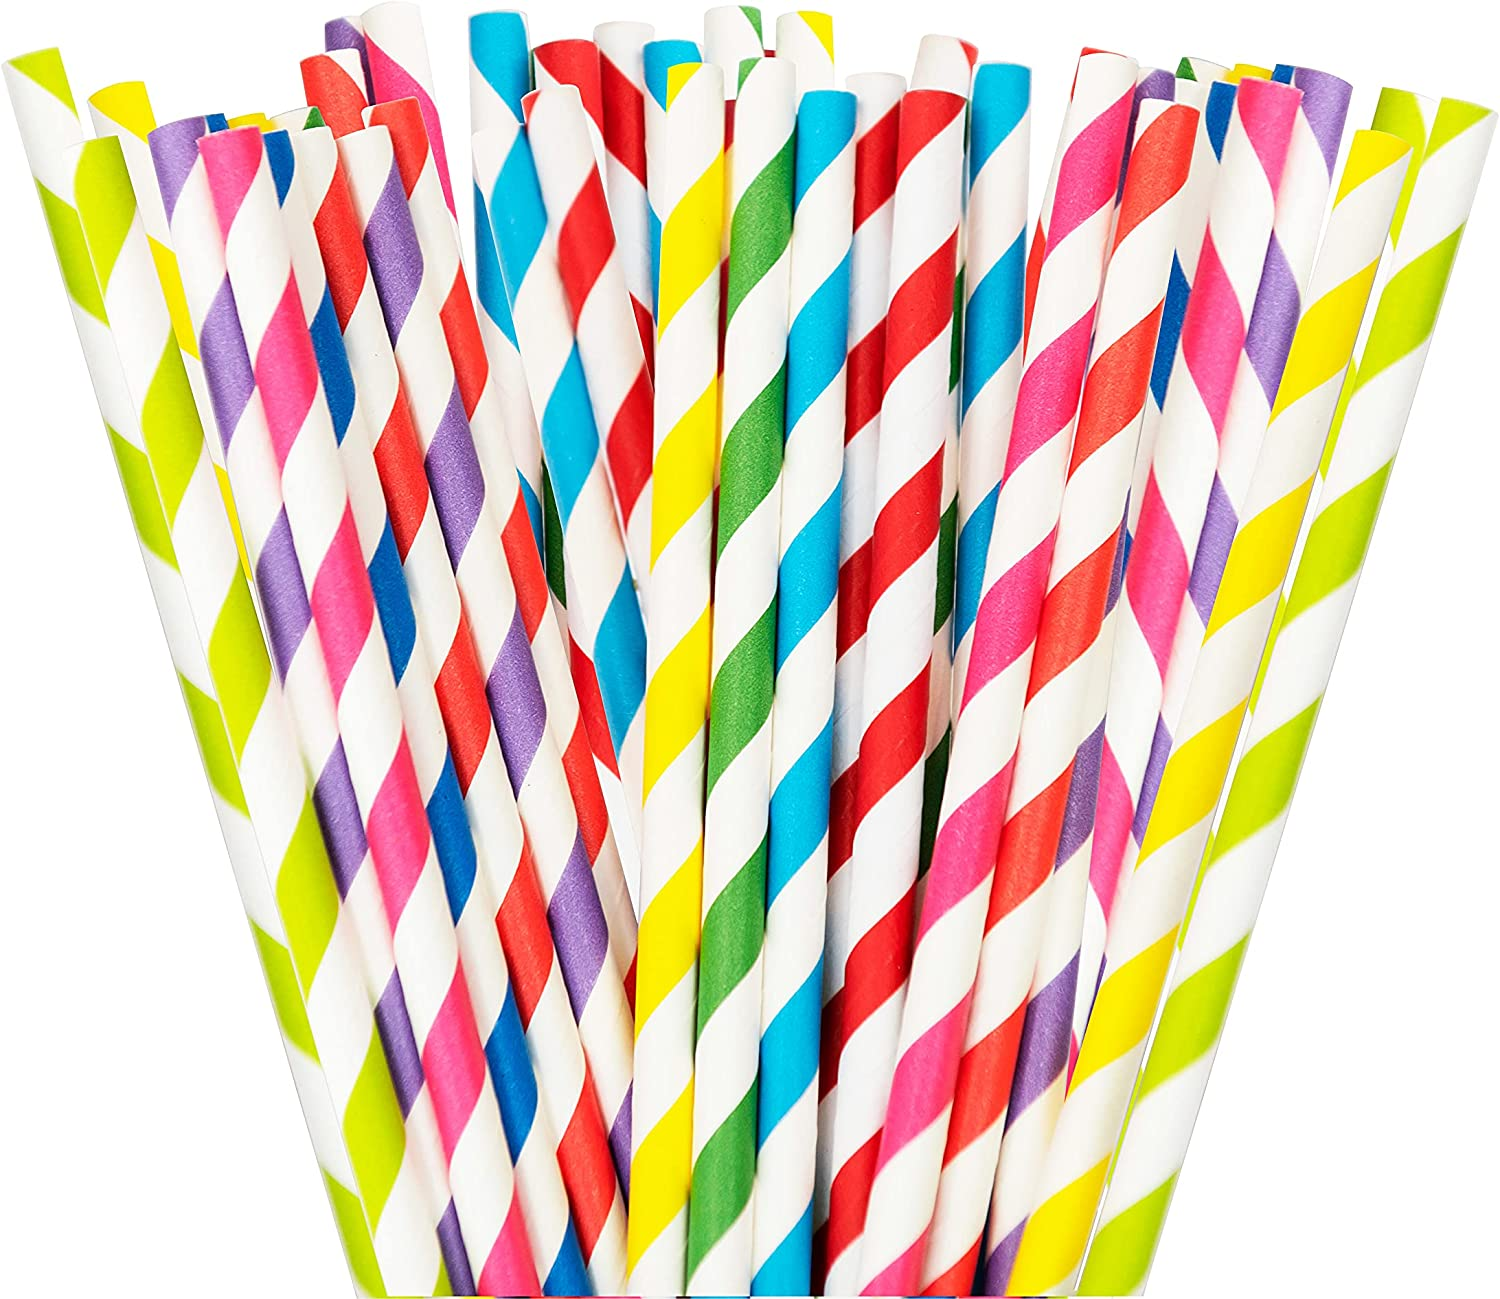 Single-Use Disposable Paper Straws - For Cold Drinks, Fits Most Beverage Cups and Containers, Restaurant Supplies for Fast Food, Takeout, To-Go, Delivery and Party Supplies, 100 Count, Assorted Colors